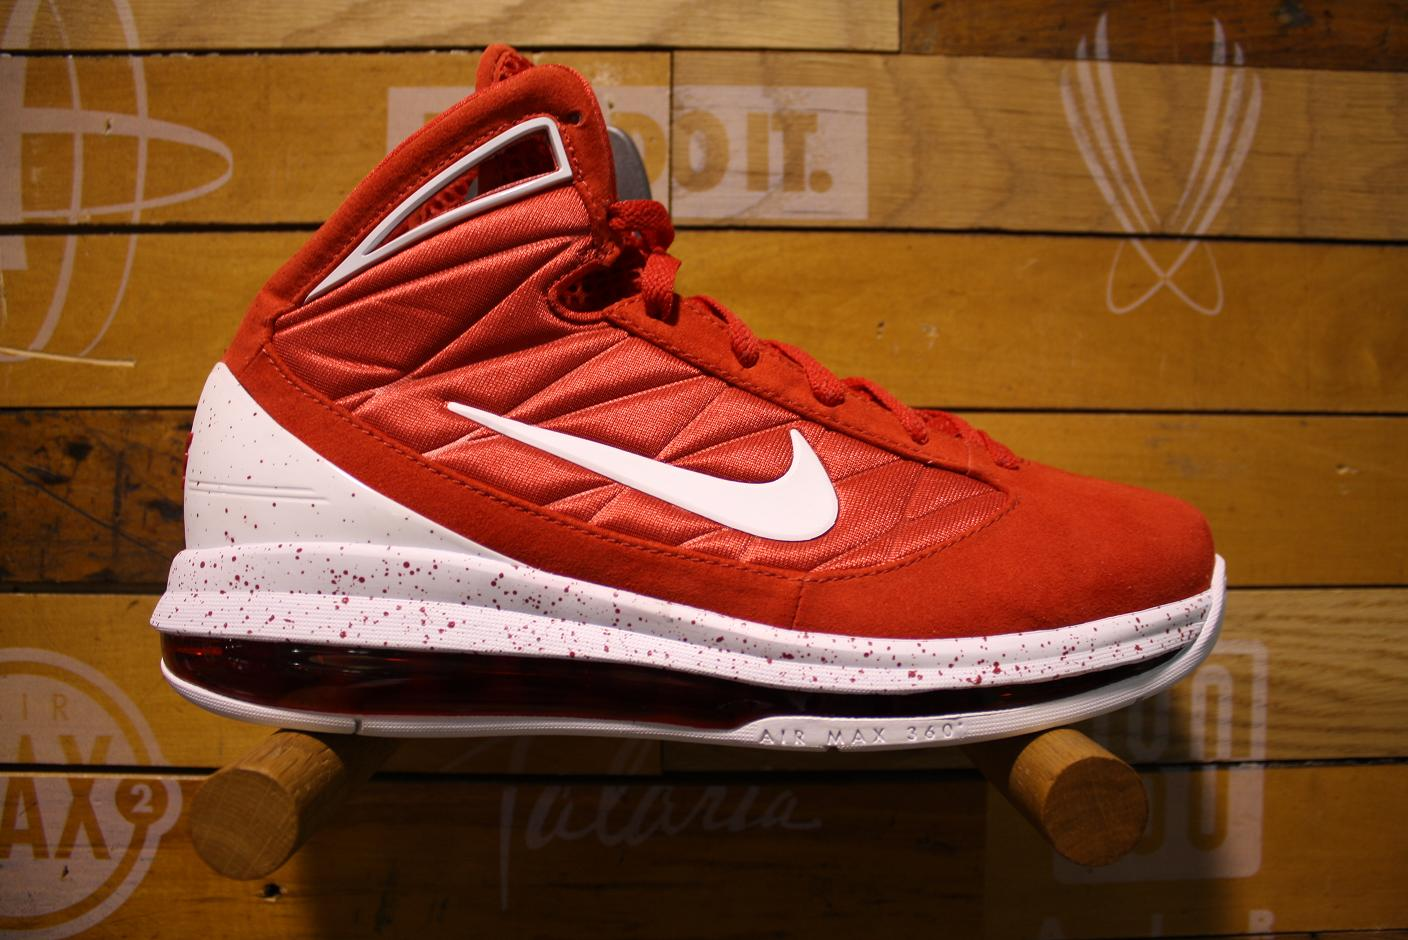 a9143a570f3 Dr. Jays Stores  New Nike Air Max HyperMax Available in Dr Jay Stores